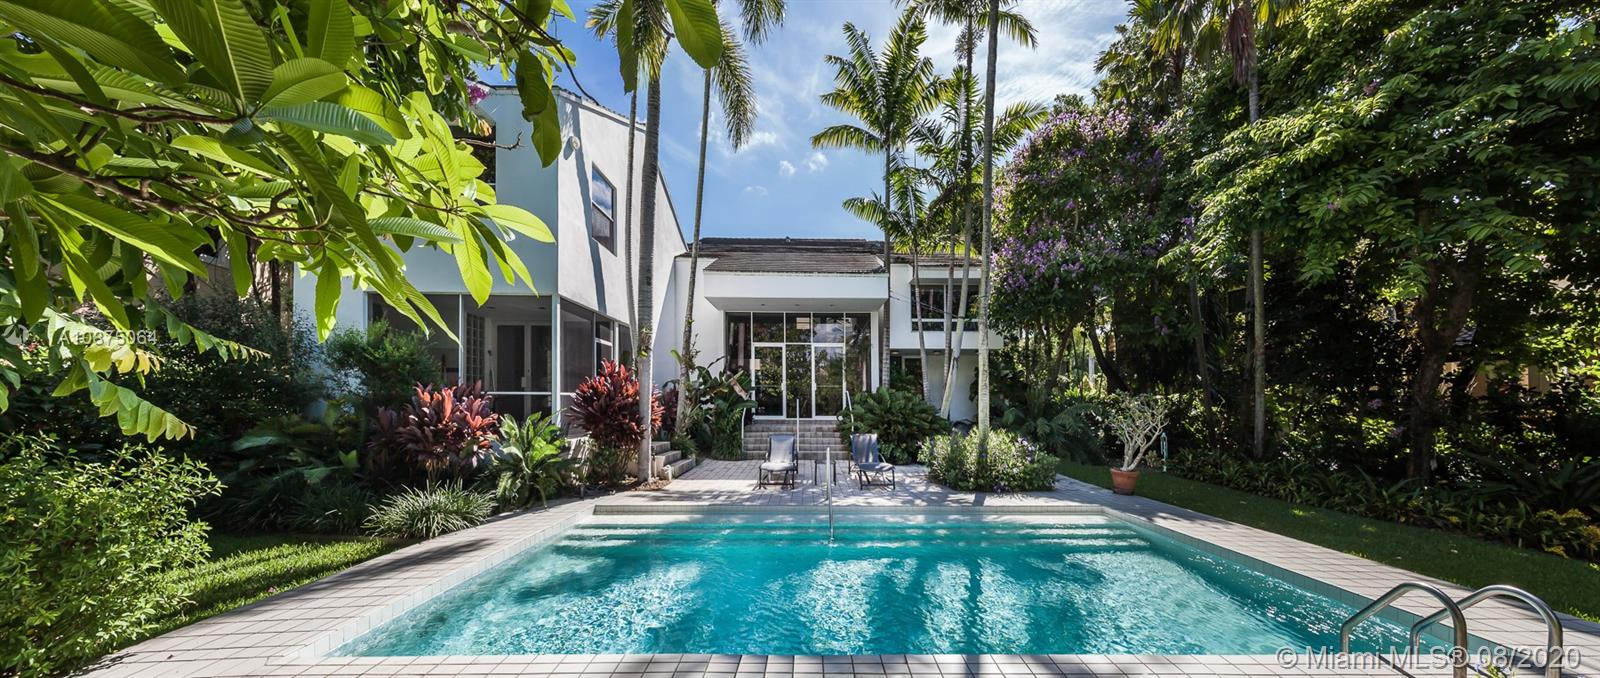 220  Costanera Rd  For Sale A10875064, FL